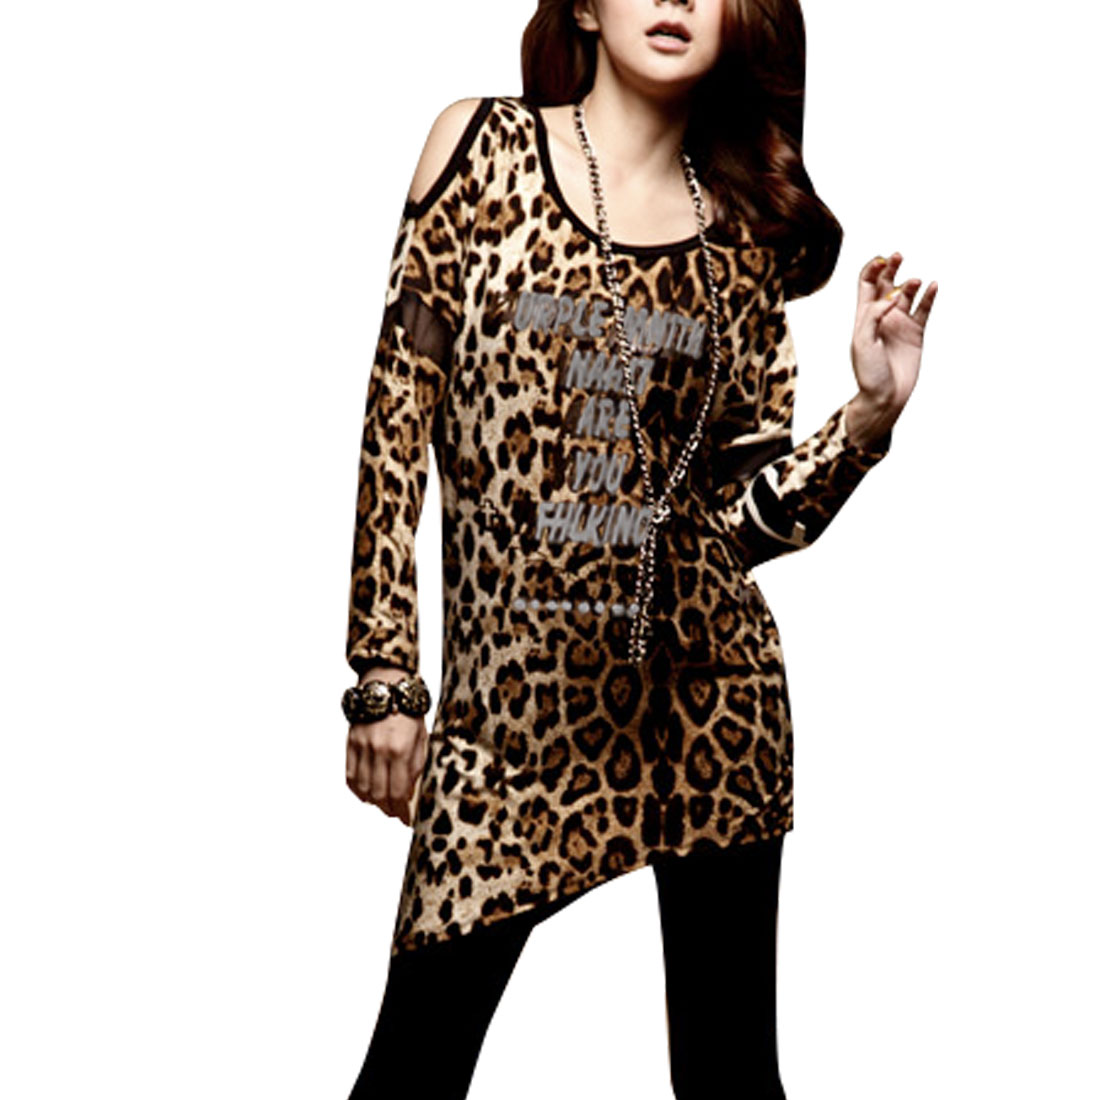 Woman Leopard Print Cutout Shoulder Scoop Neck Shirt Top XS